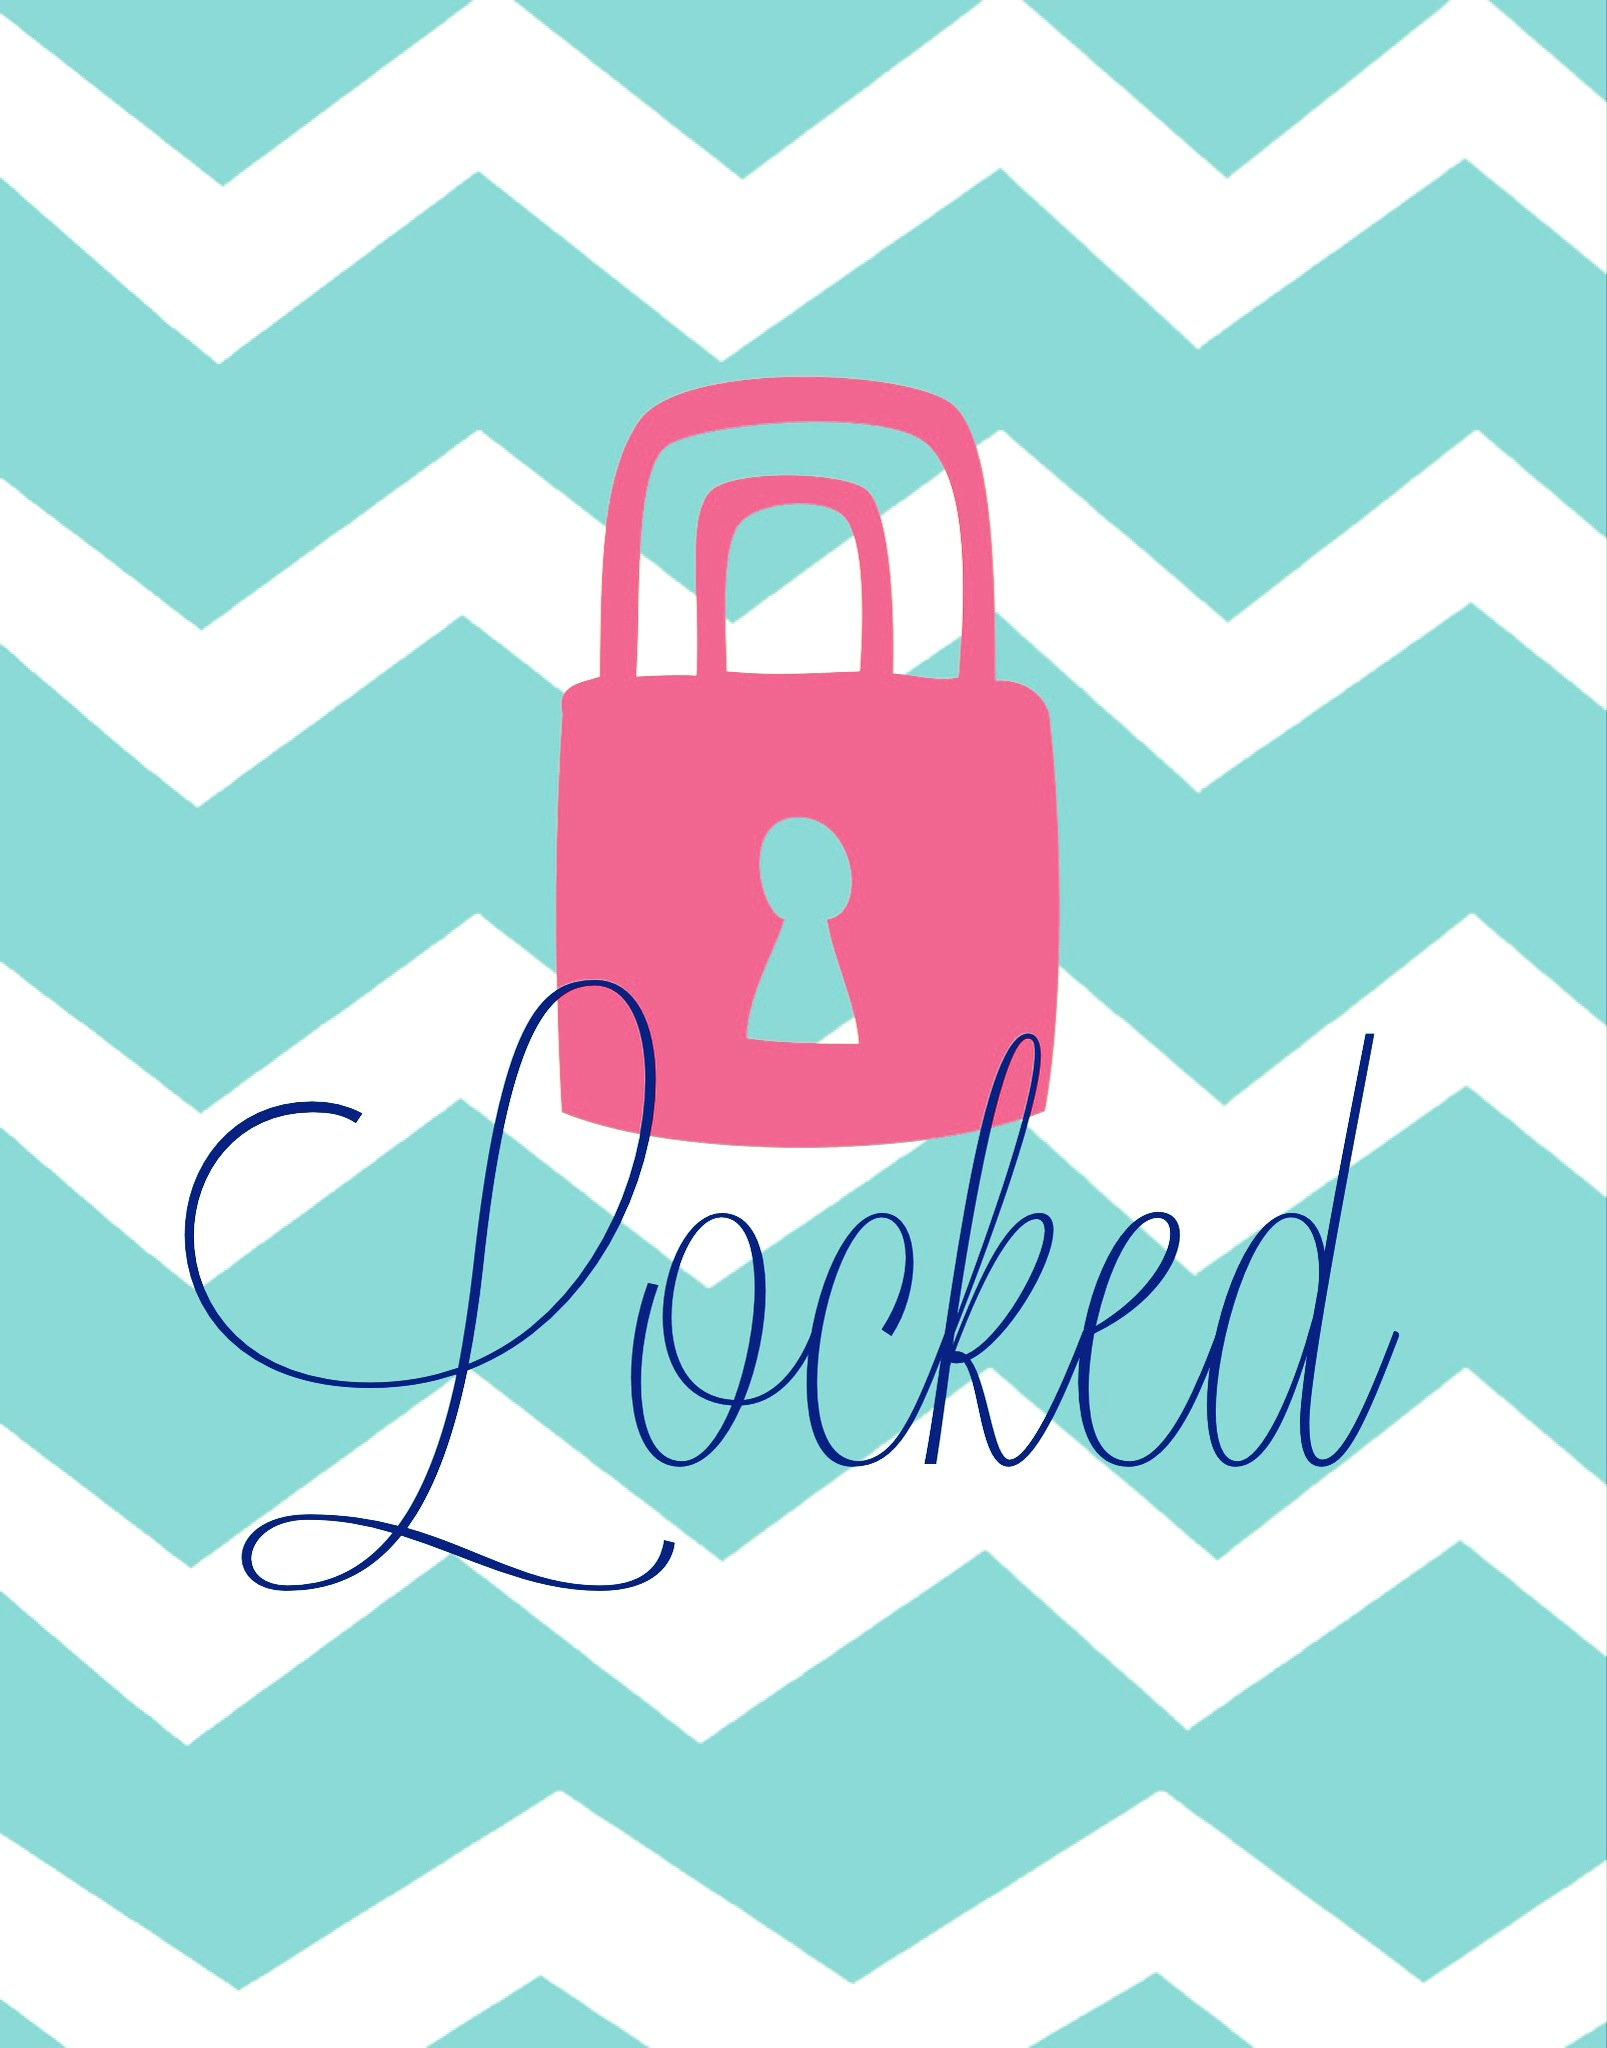 Lock clipart cute Screens Chevron Wallpapers iPhone screen